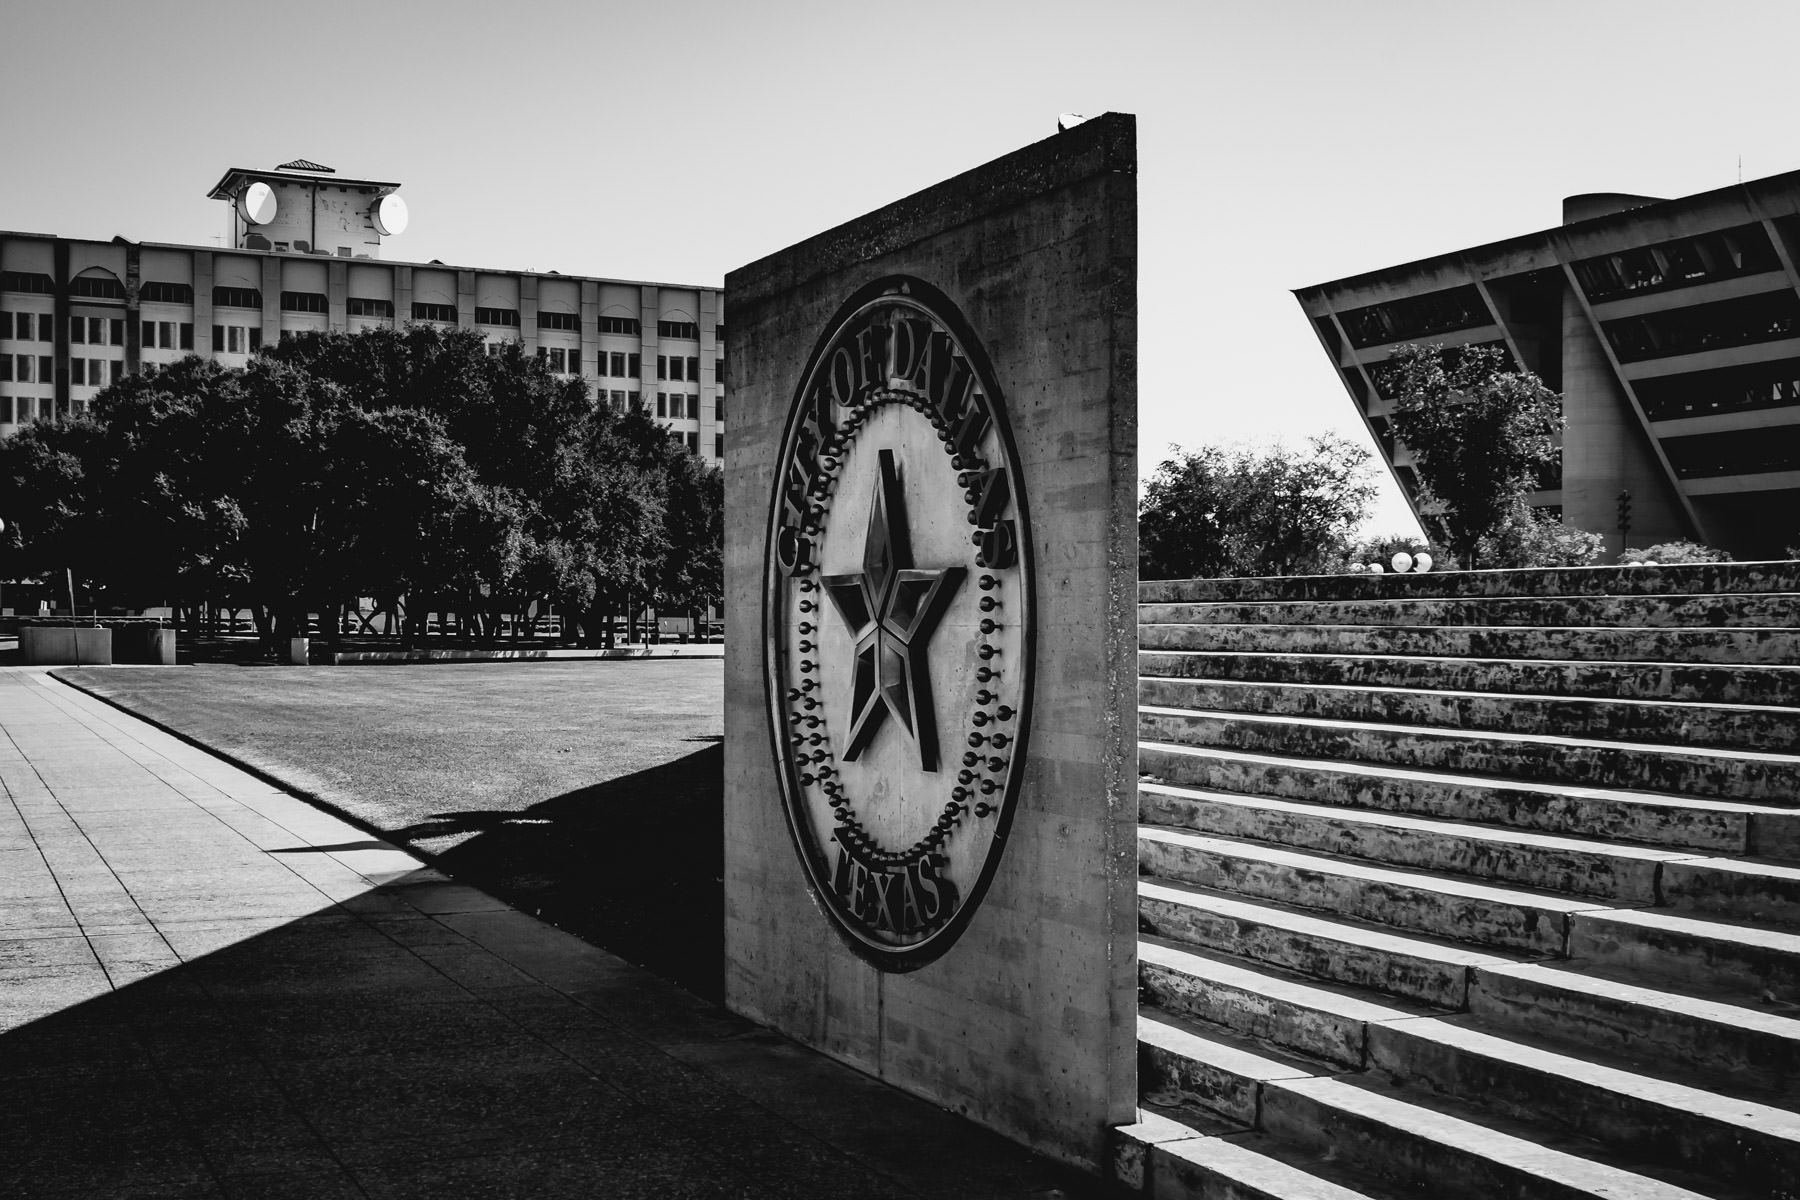 The seal of the City of Dallas in front of the I.M. Pei-designed city hall.